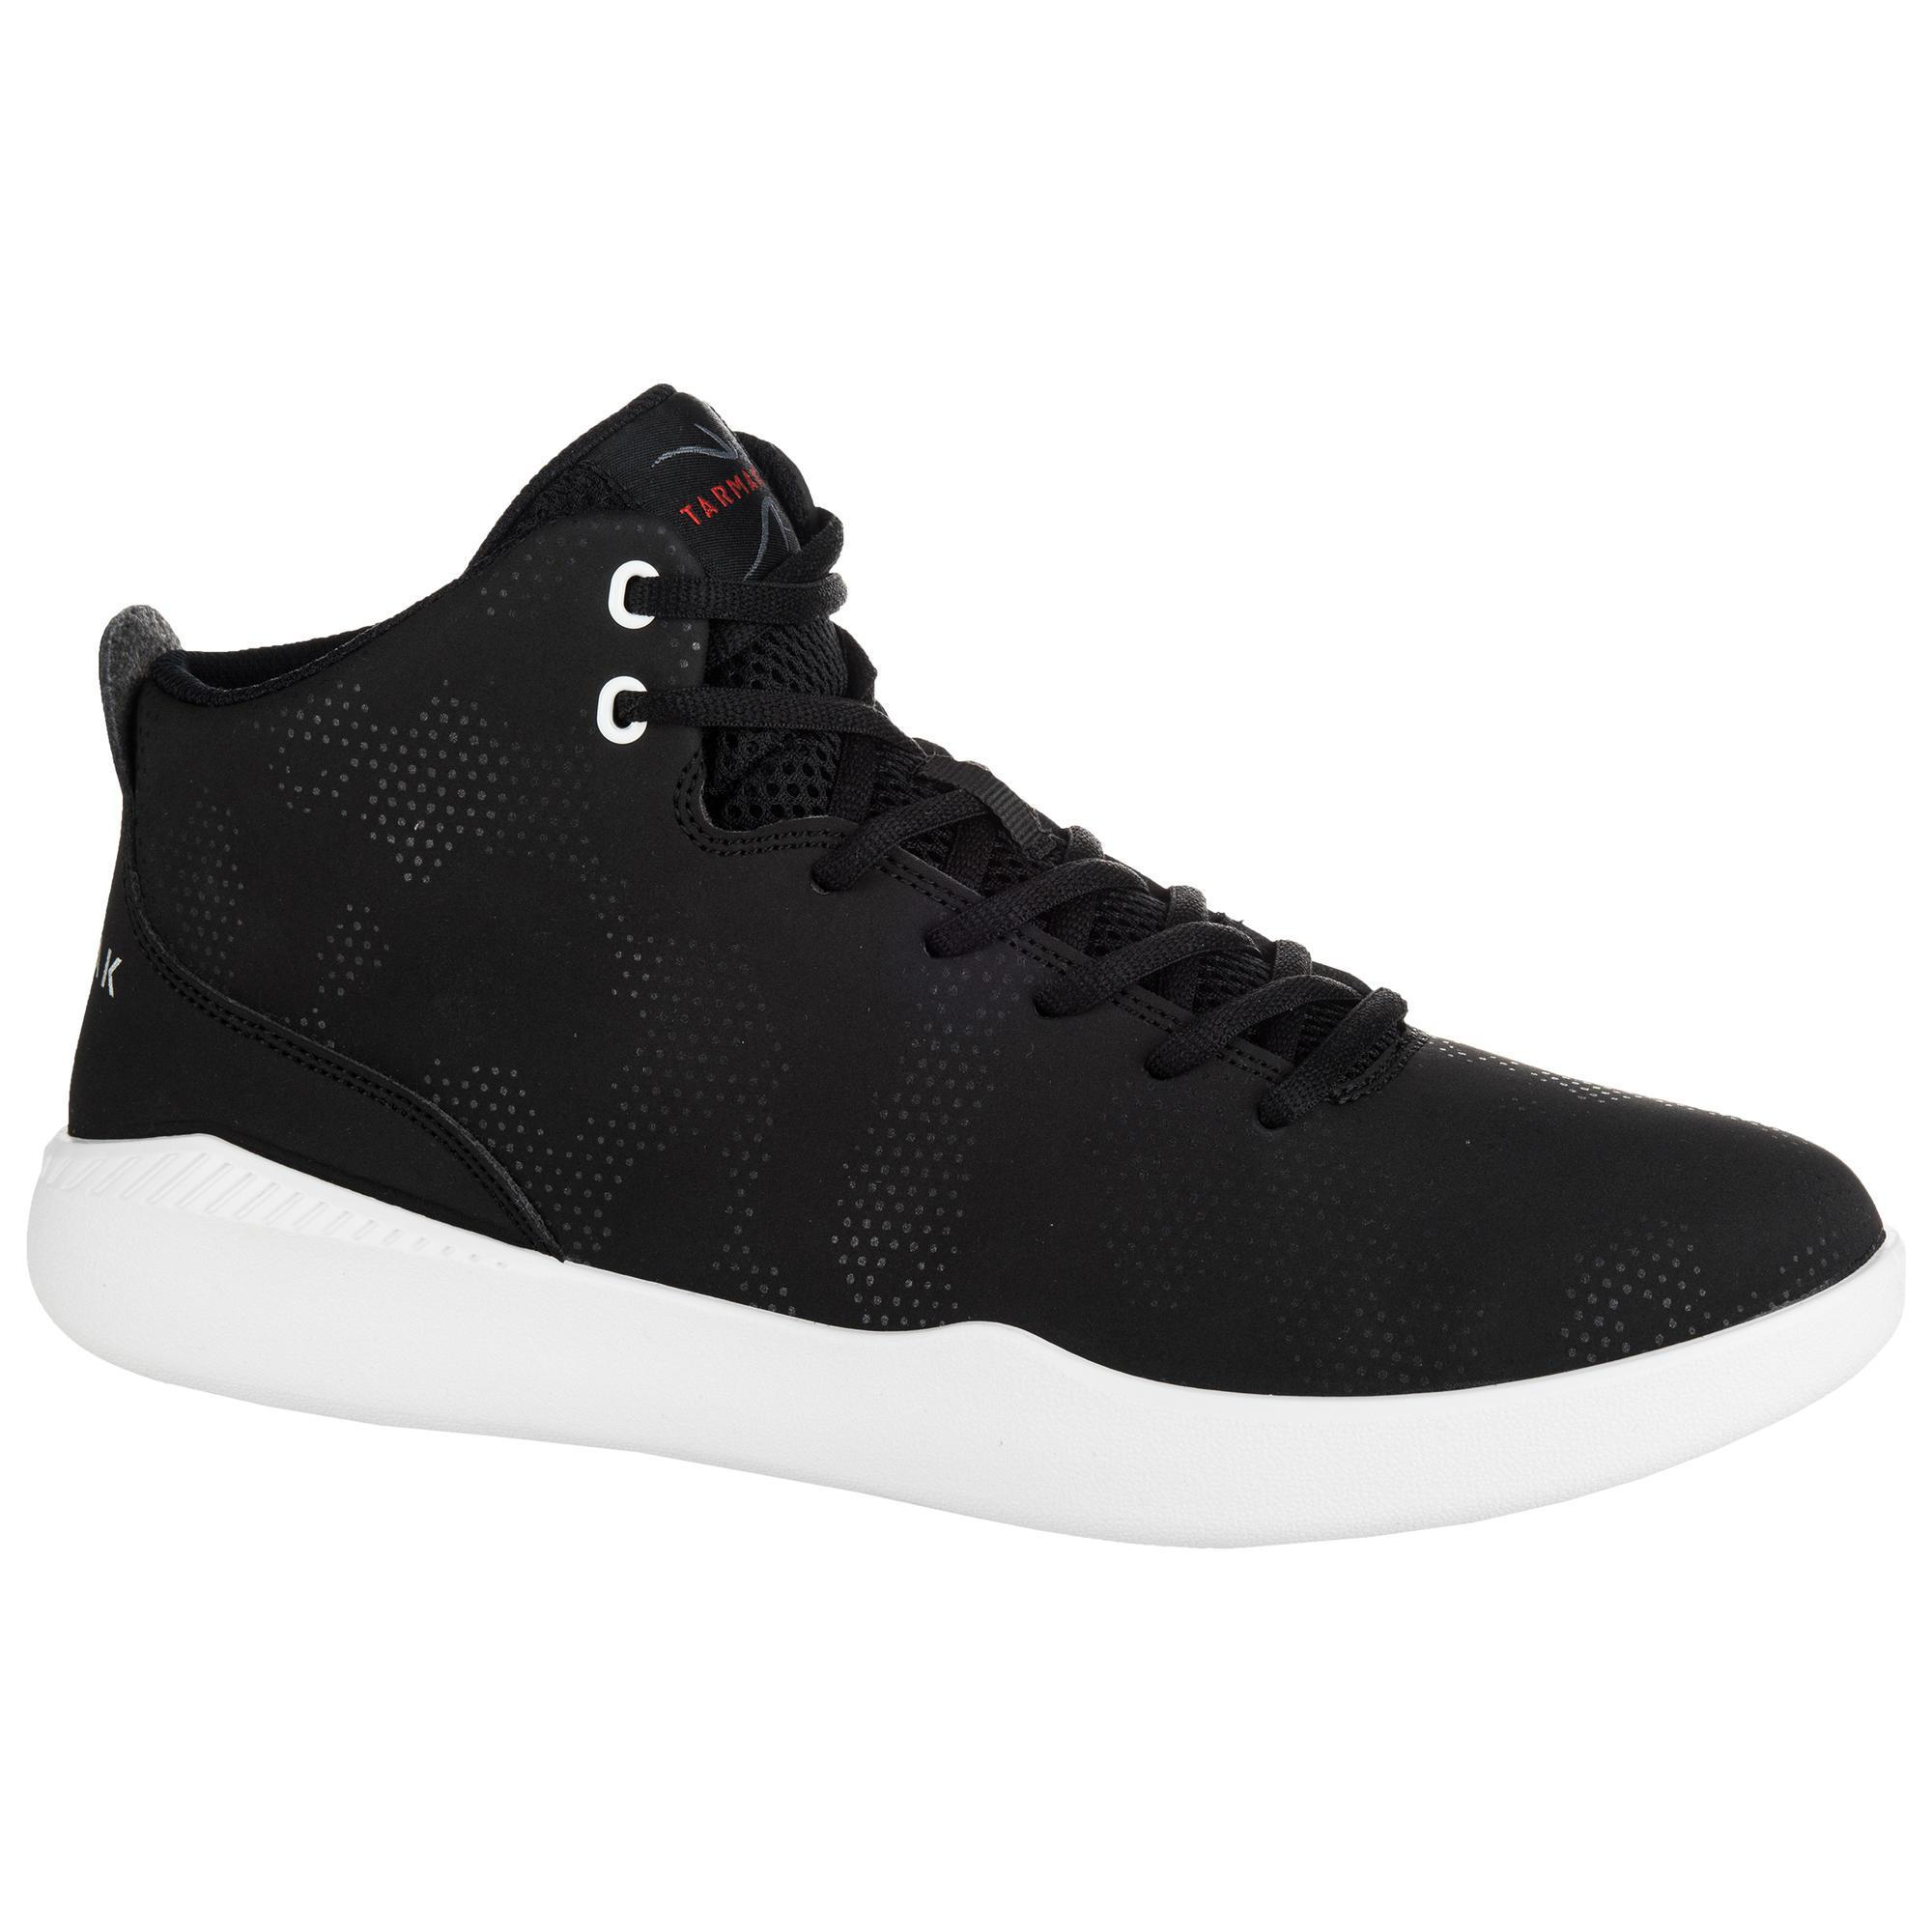 Tarmak Hoge basketbalschoenen heren/dames beginner Protect 100 zwart